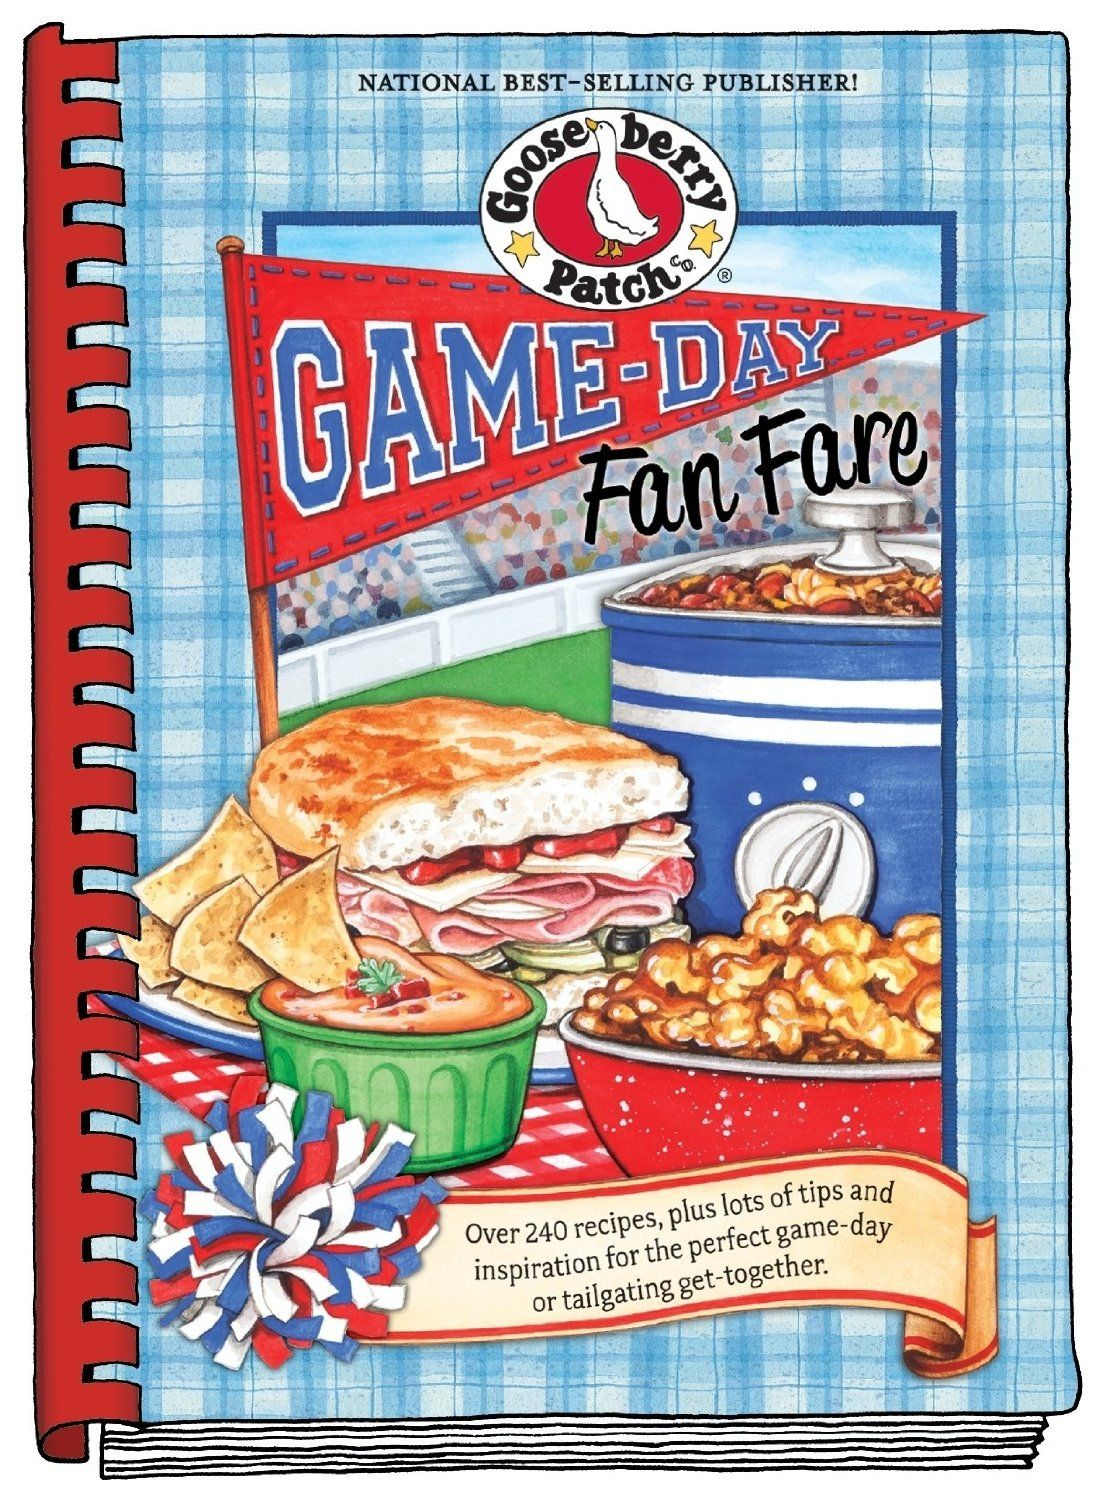 Gooseberry Patch Game Day Fan Fare Cookbook Review And